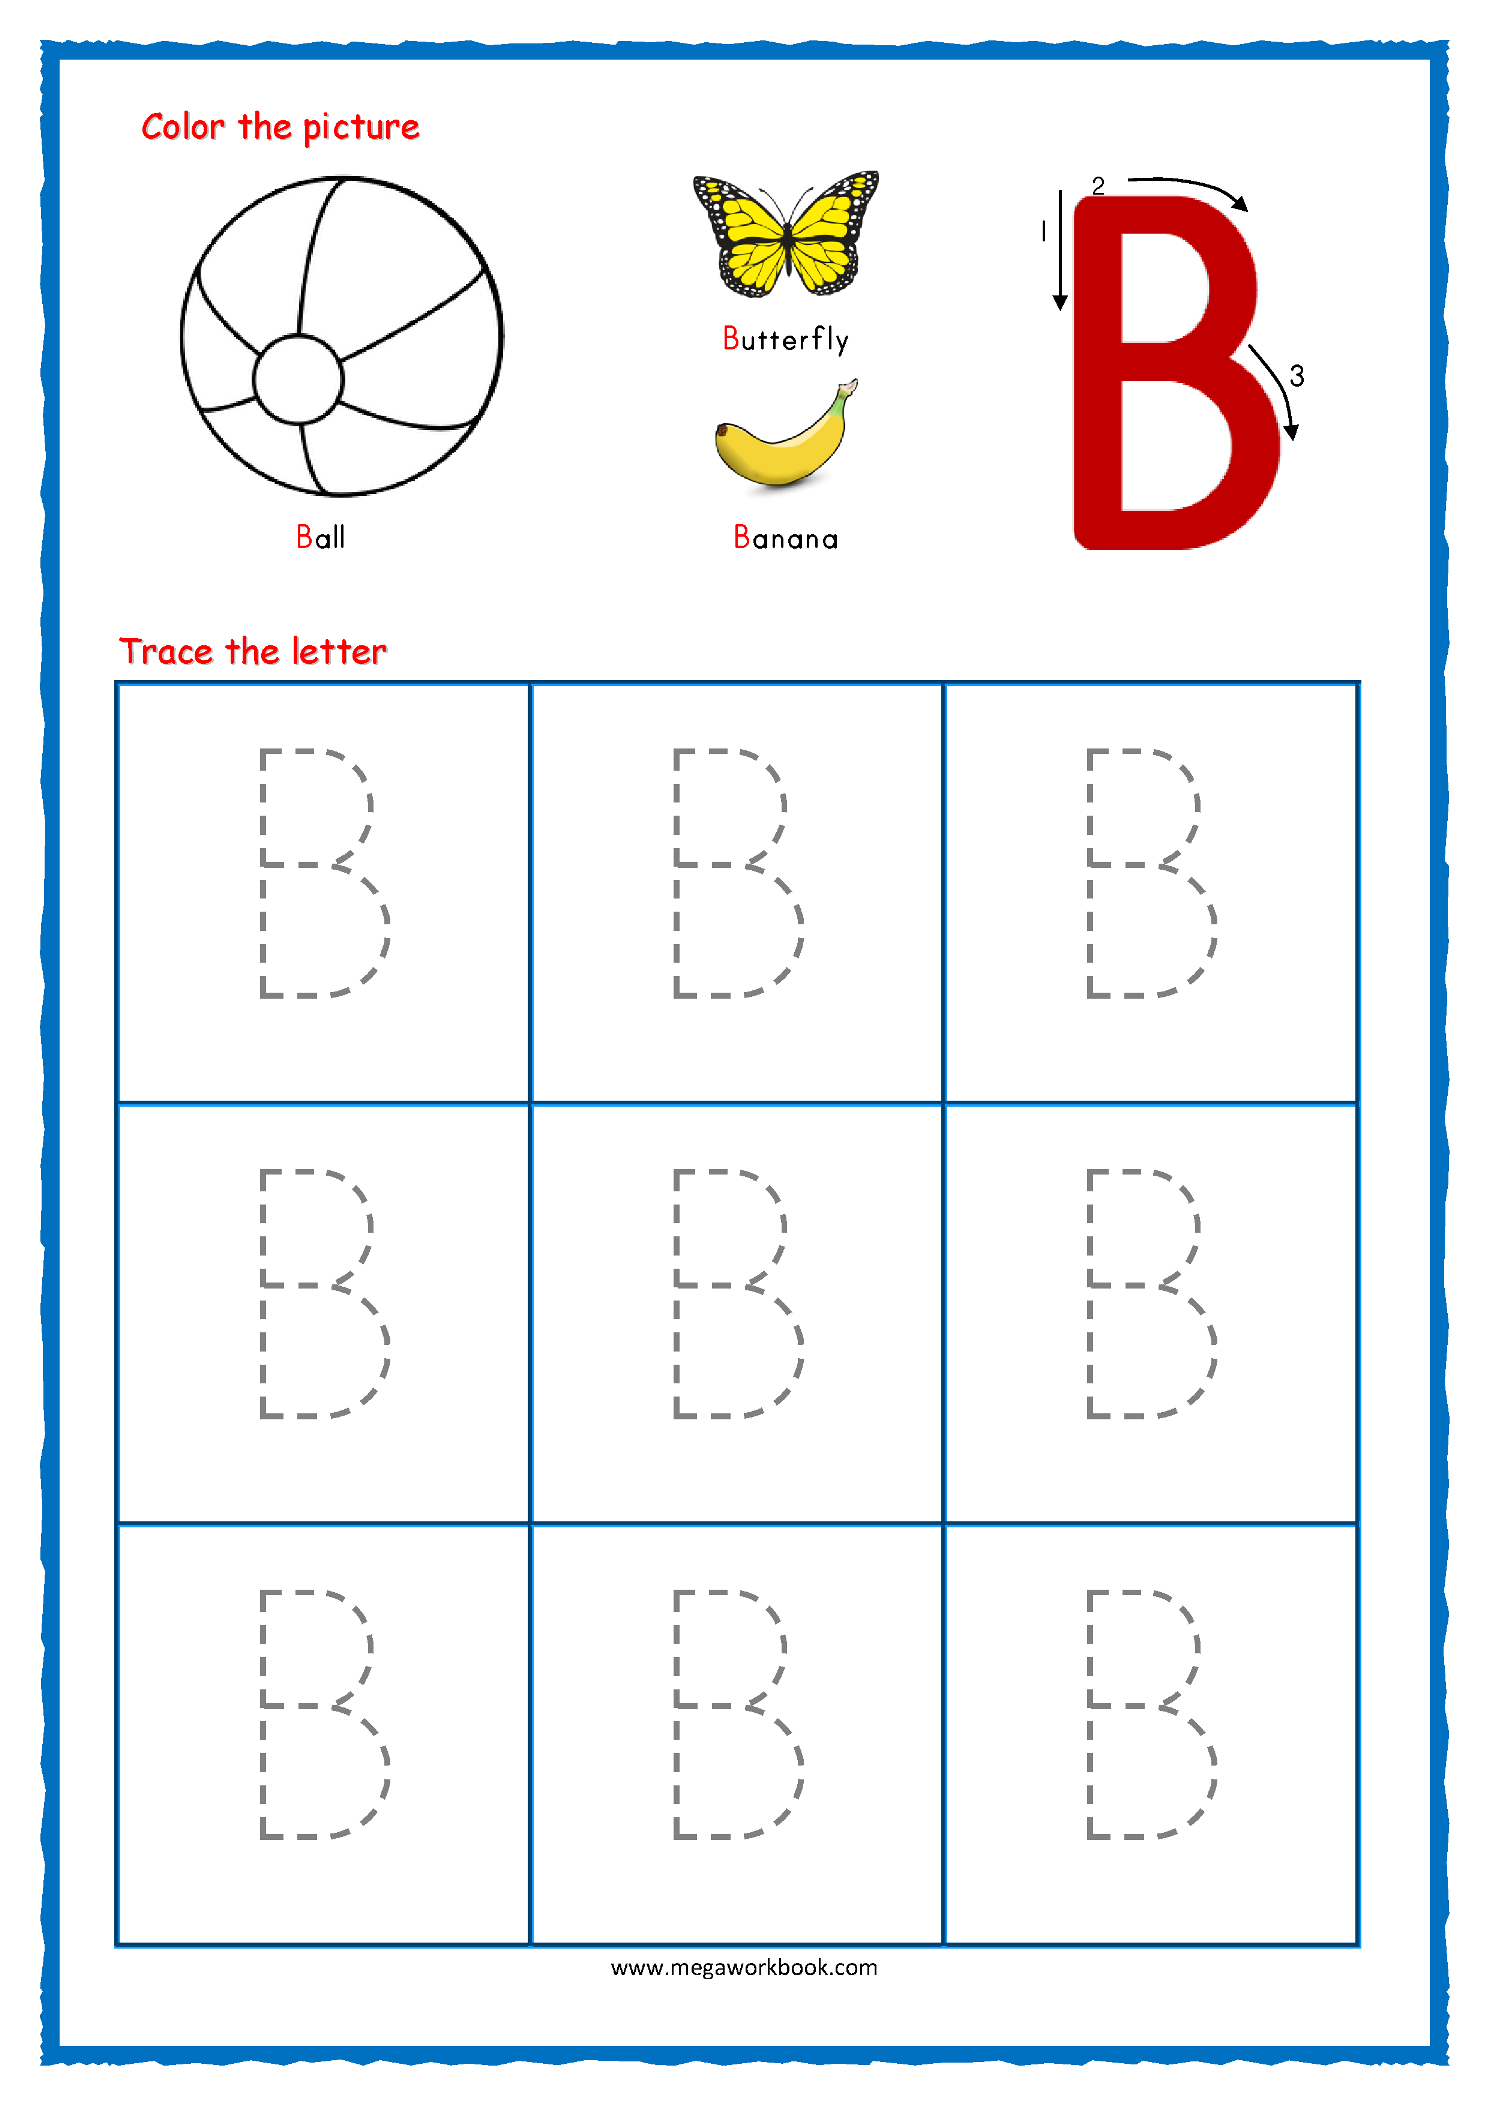 Tracing Letters - Alphabet Tracing - Capital Letters with Alphabet Worksheets Tracing